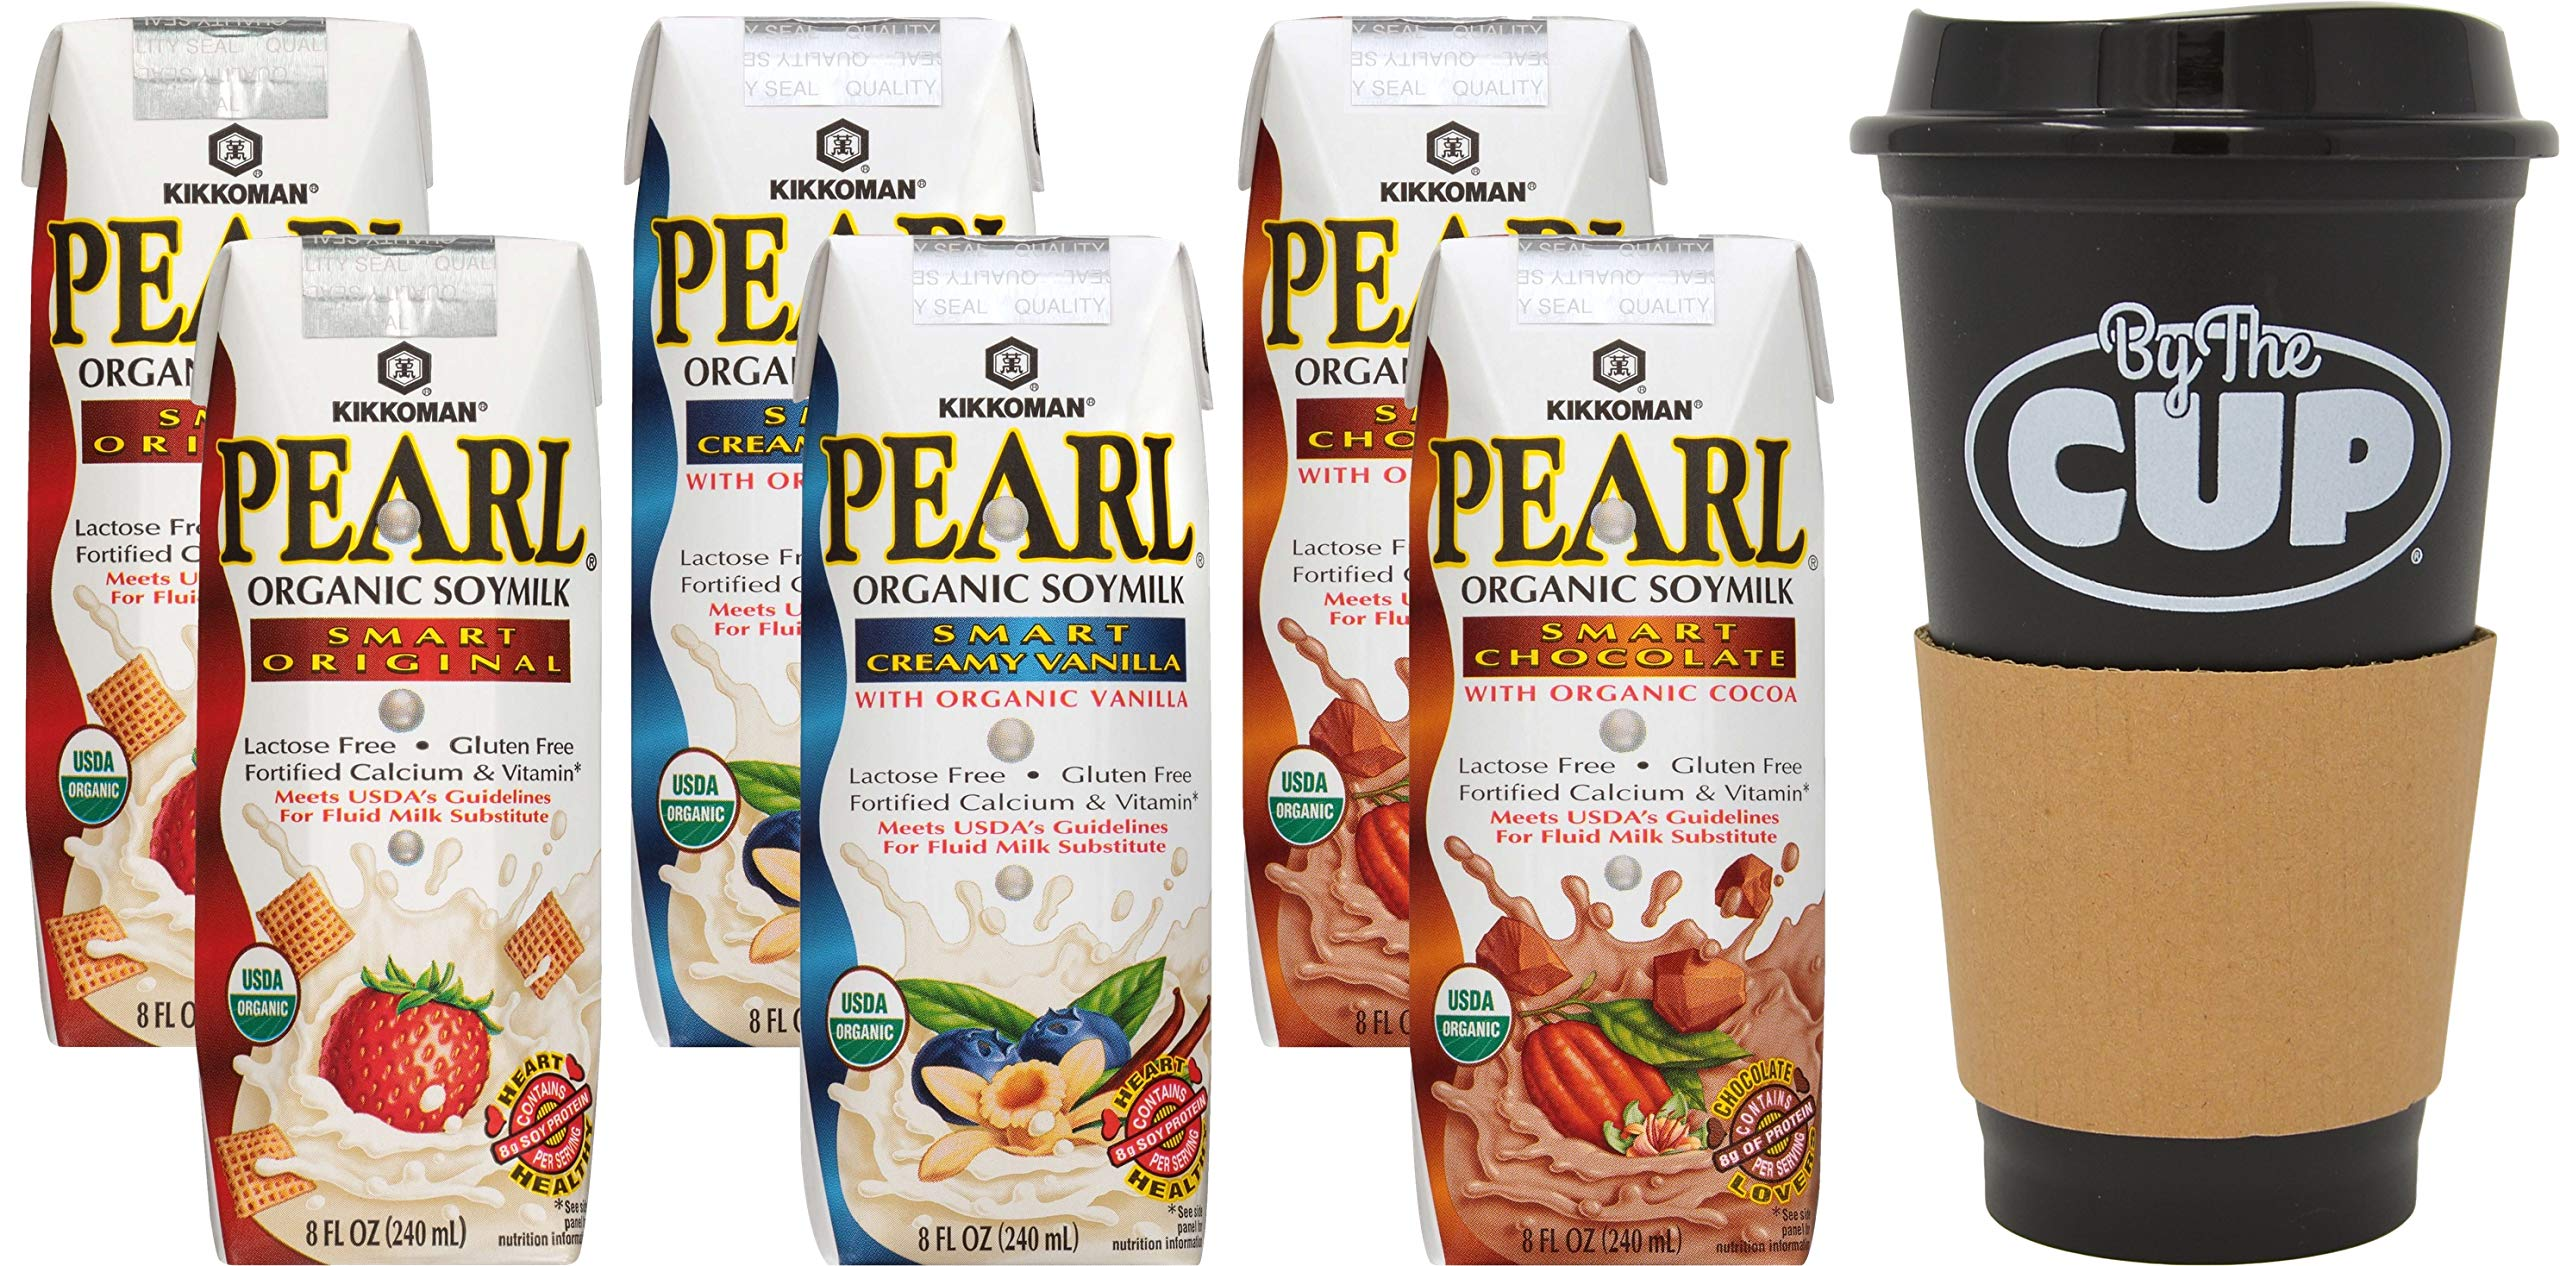 Kikkoman Pearl Organic Soymilk Variety 2 - 8 Ounce Cartons Each Flavor - Original, Vanilla, and Chocolate (Pack of 6) with By The Cup To Go Cup by By The Cup (Image #5)